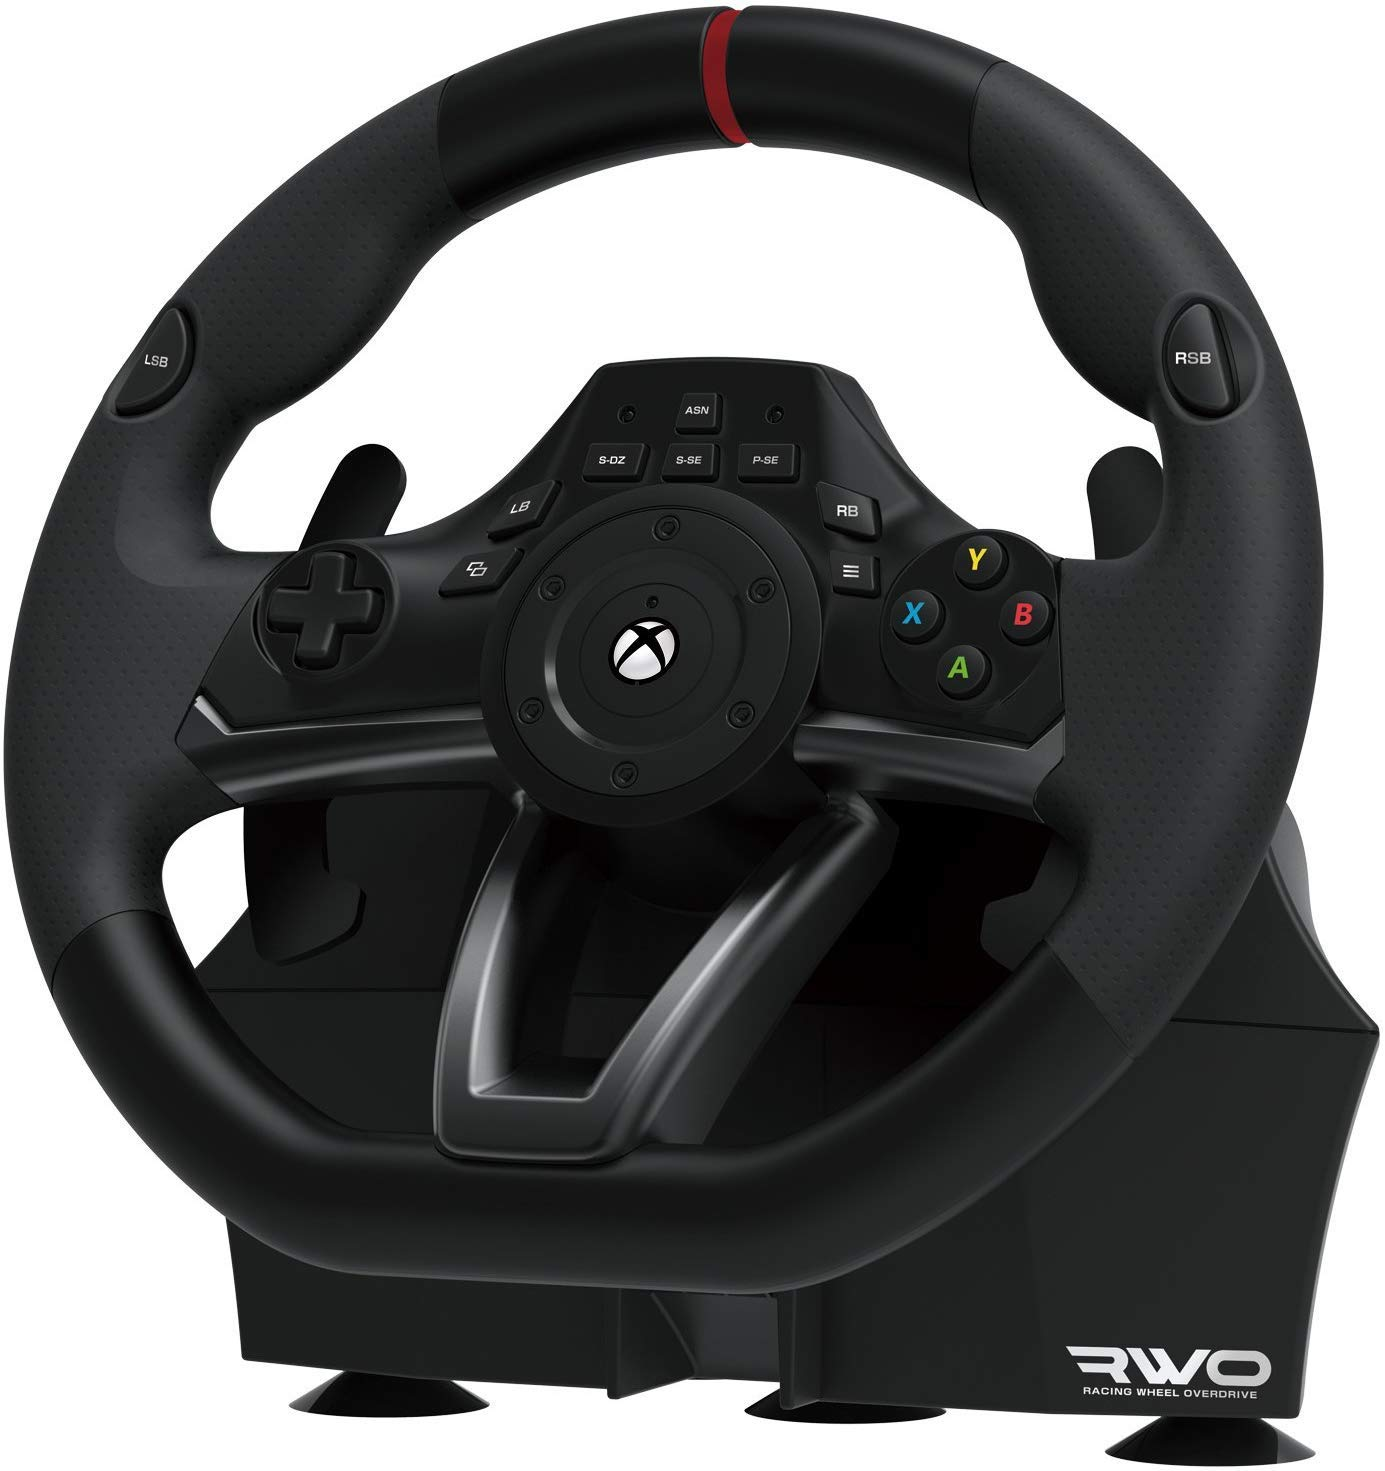 Hori Racing Wheel Overdrive For Xbox One Officially Licensed By Microsoft Amazon Sg Video Games